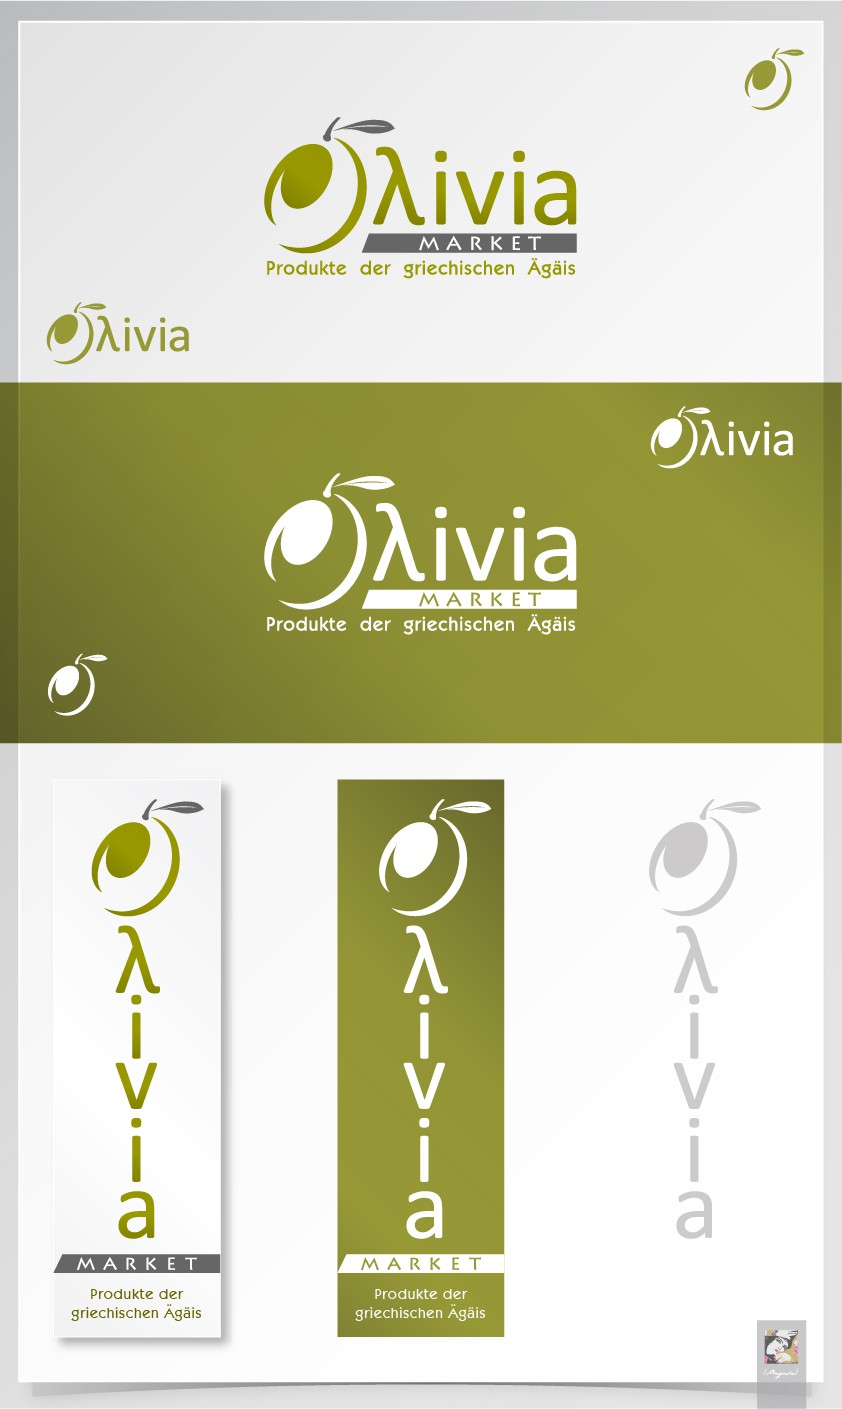 New logo wanted for Oλivia Market